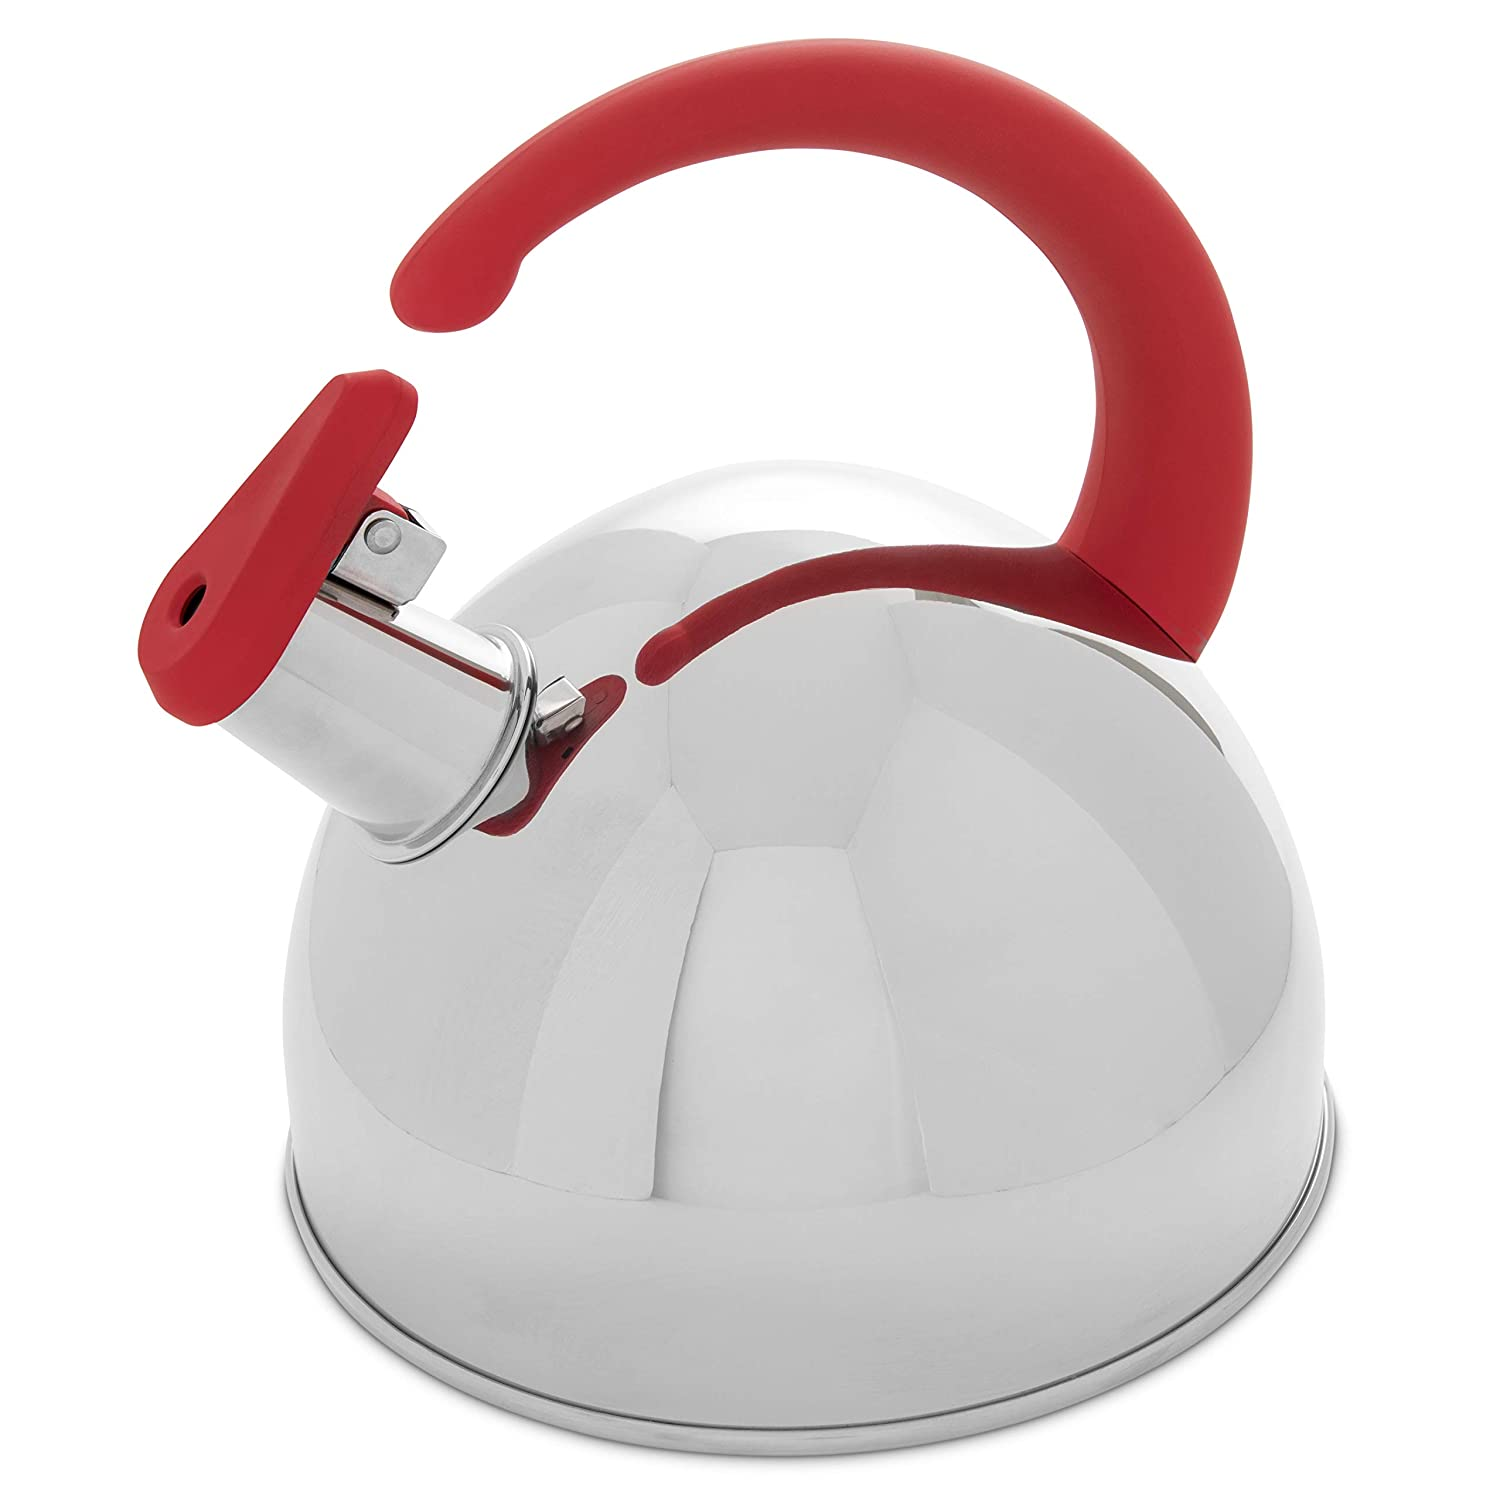 Whistling Tea Kettle, 304 Stainless Steel with Green Cool Touch Silicone Handle, 1.7QT - Pour Over Kettles with Modern Accents - Stylish, Quick Heating, Rust-Proof, Stovetop Coffee and Tea Pots MECOLA